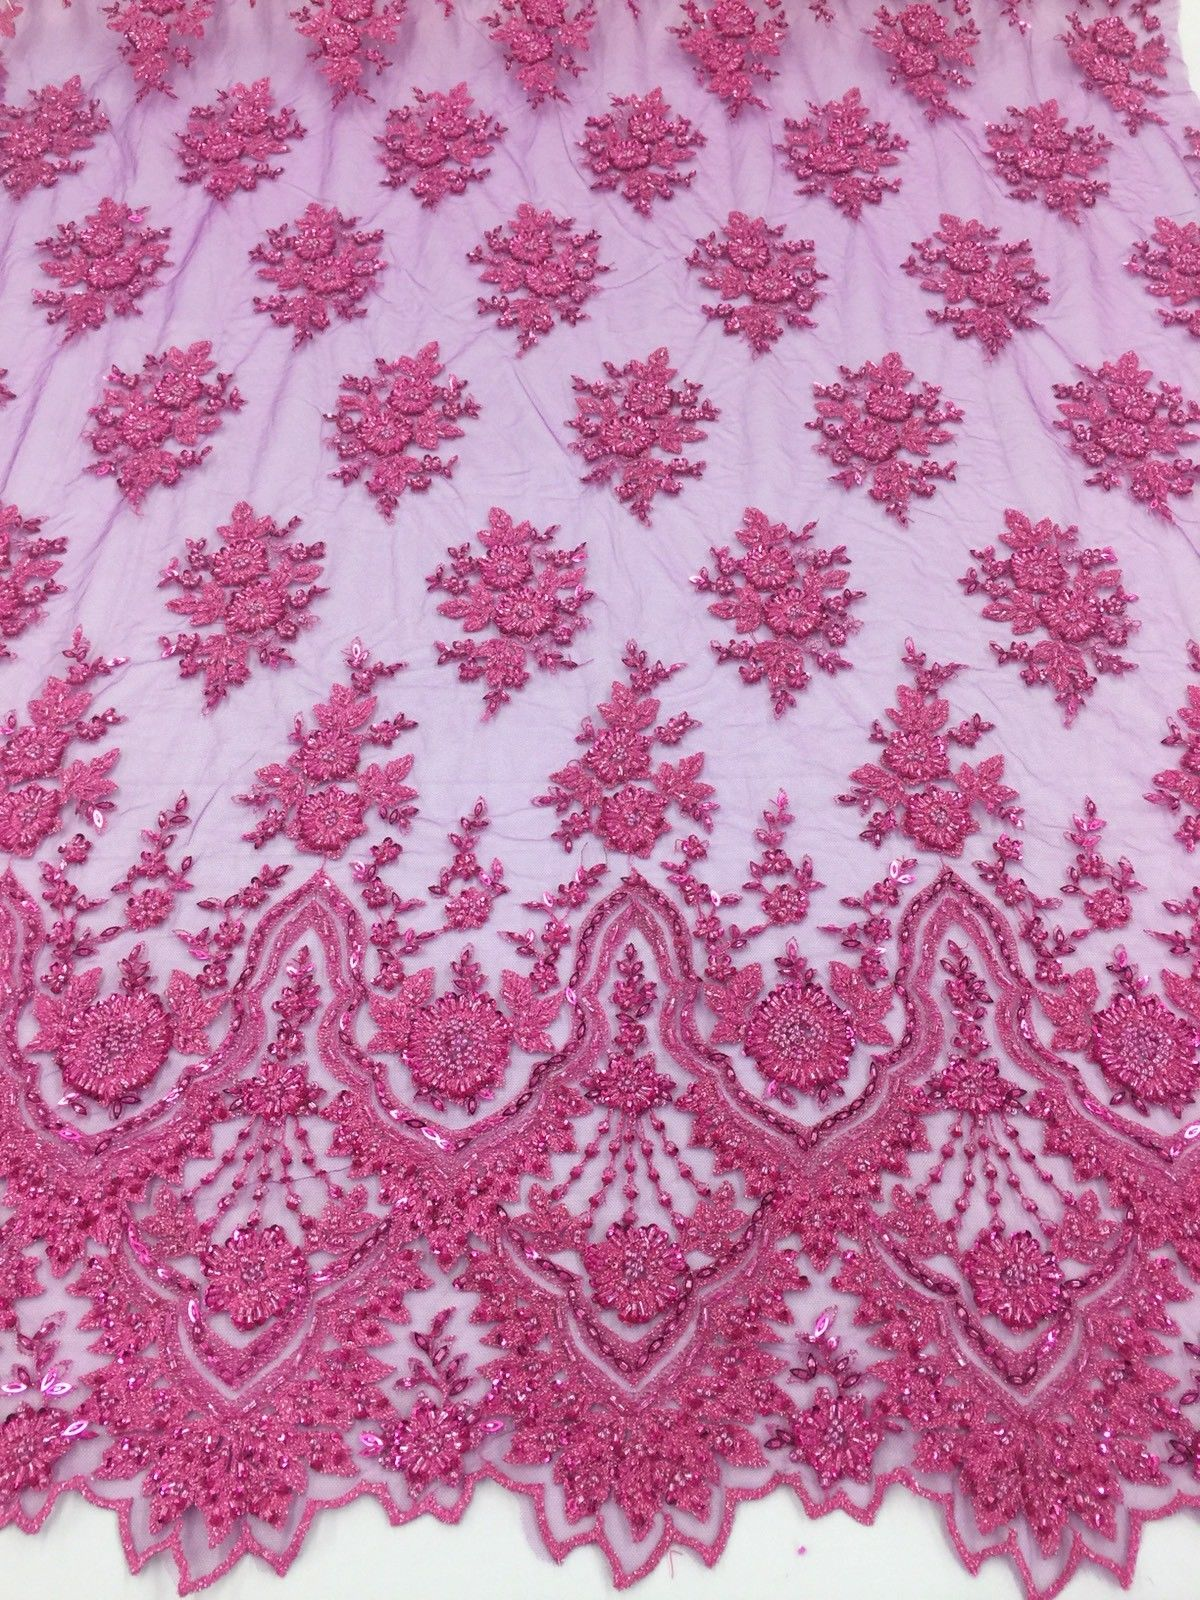 Beaded fabric - Embroidered Mesh Squin Fuchsia Bridal Veil & Wedding By The Yard - KINGDOM OF FABRICS